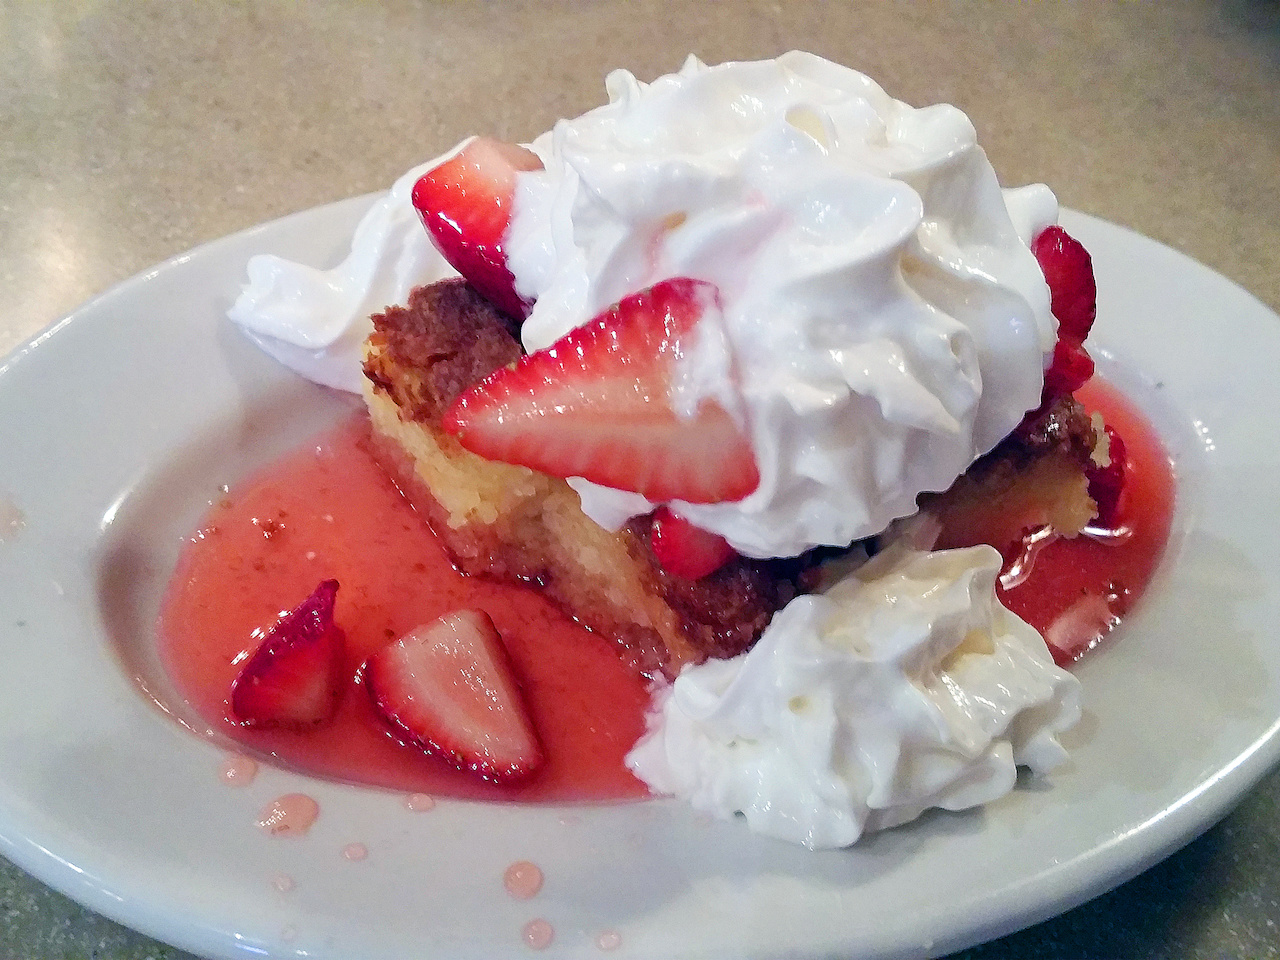 The strawberry shortcake is a seasonal fave at The Bright Star. Served with fresh strawberries and homemade whipped cream atop a rich, dense to-die-for pound cake, this is an unforgettable dessert.